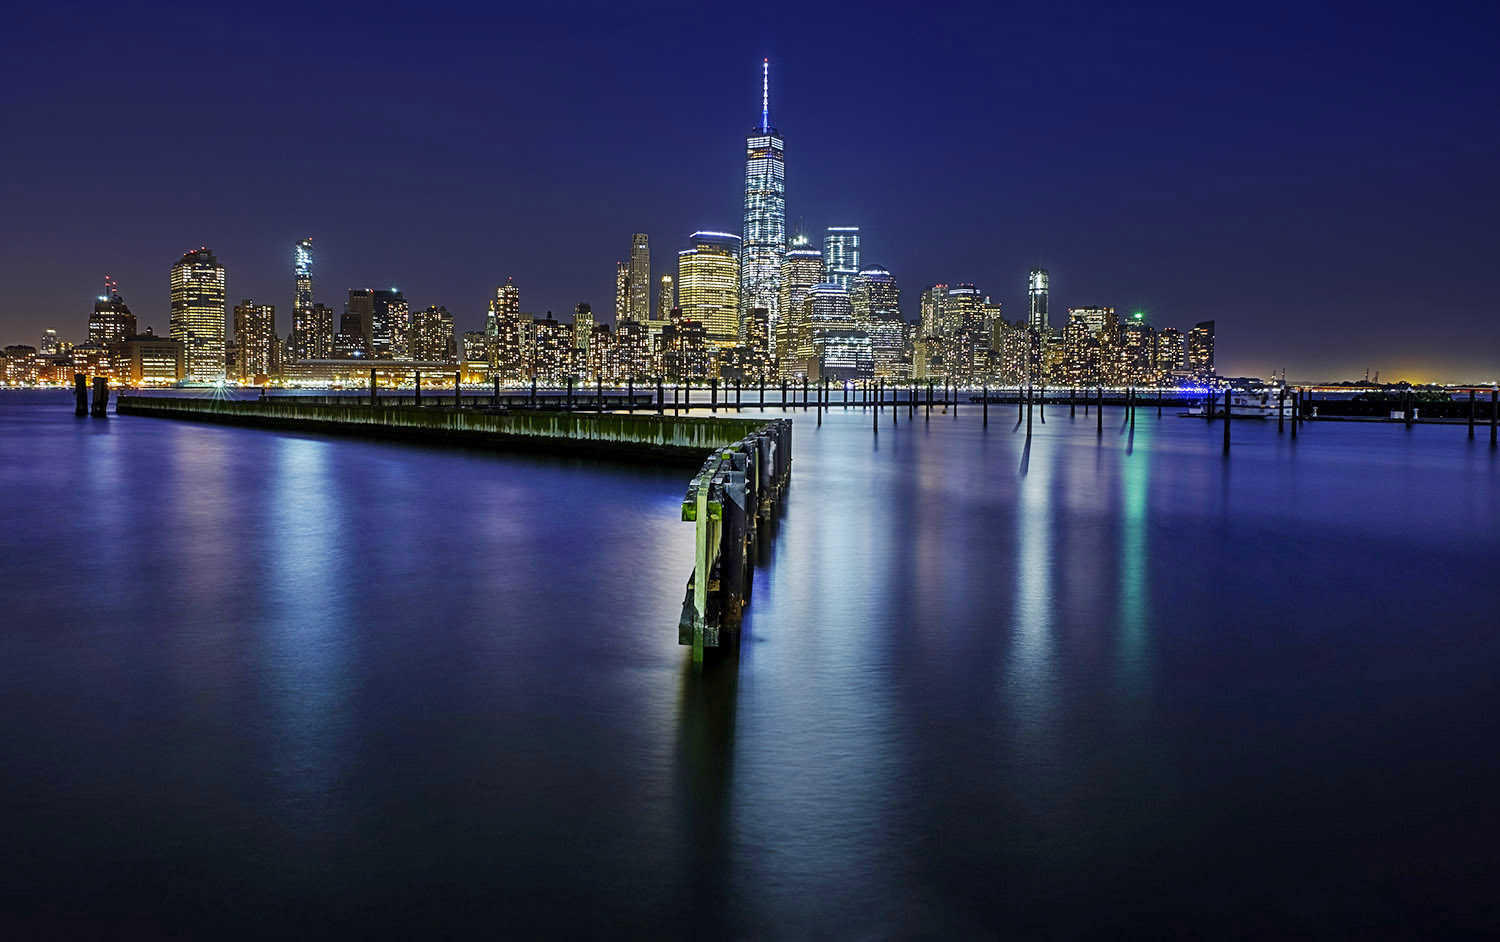 ti01091602wp How to take photos at night – Part II: Enhancing the image Photography Tips